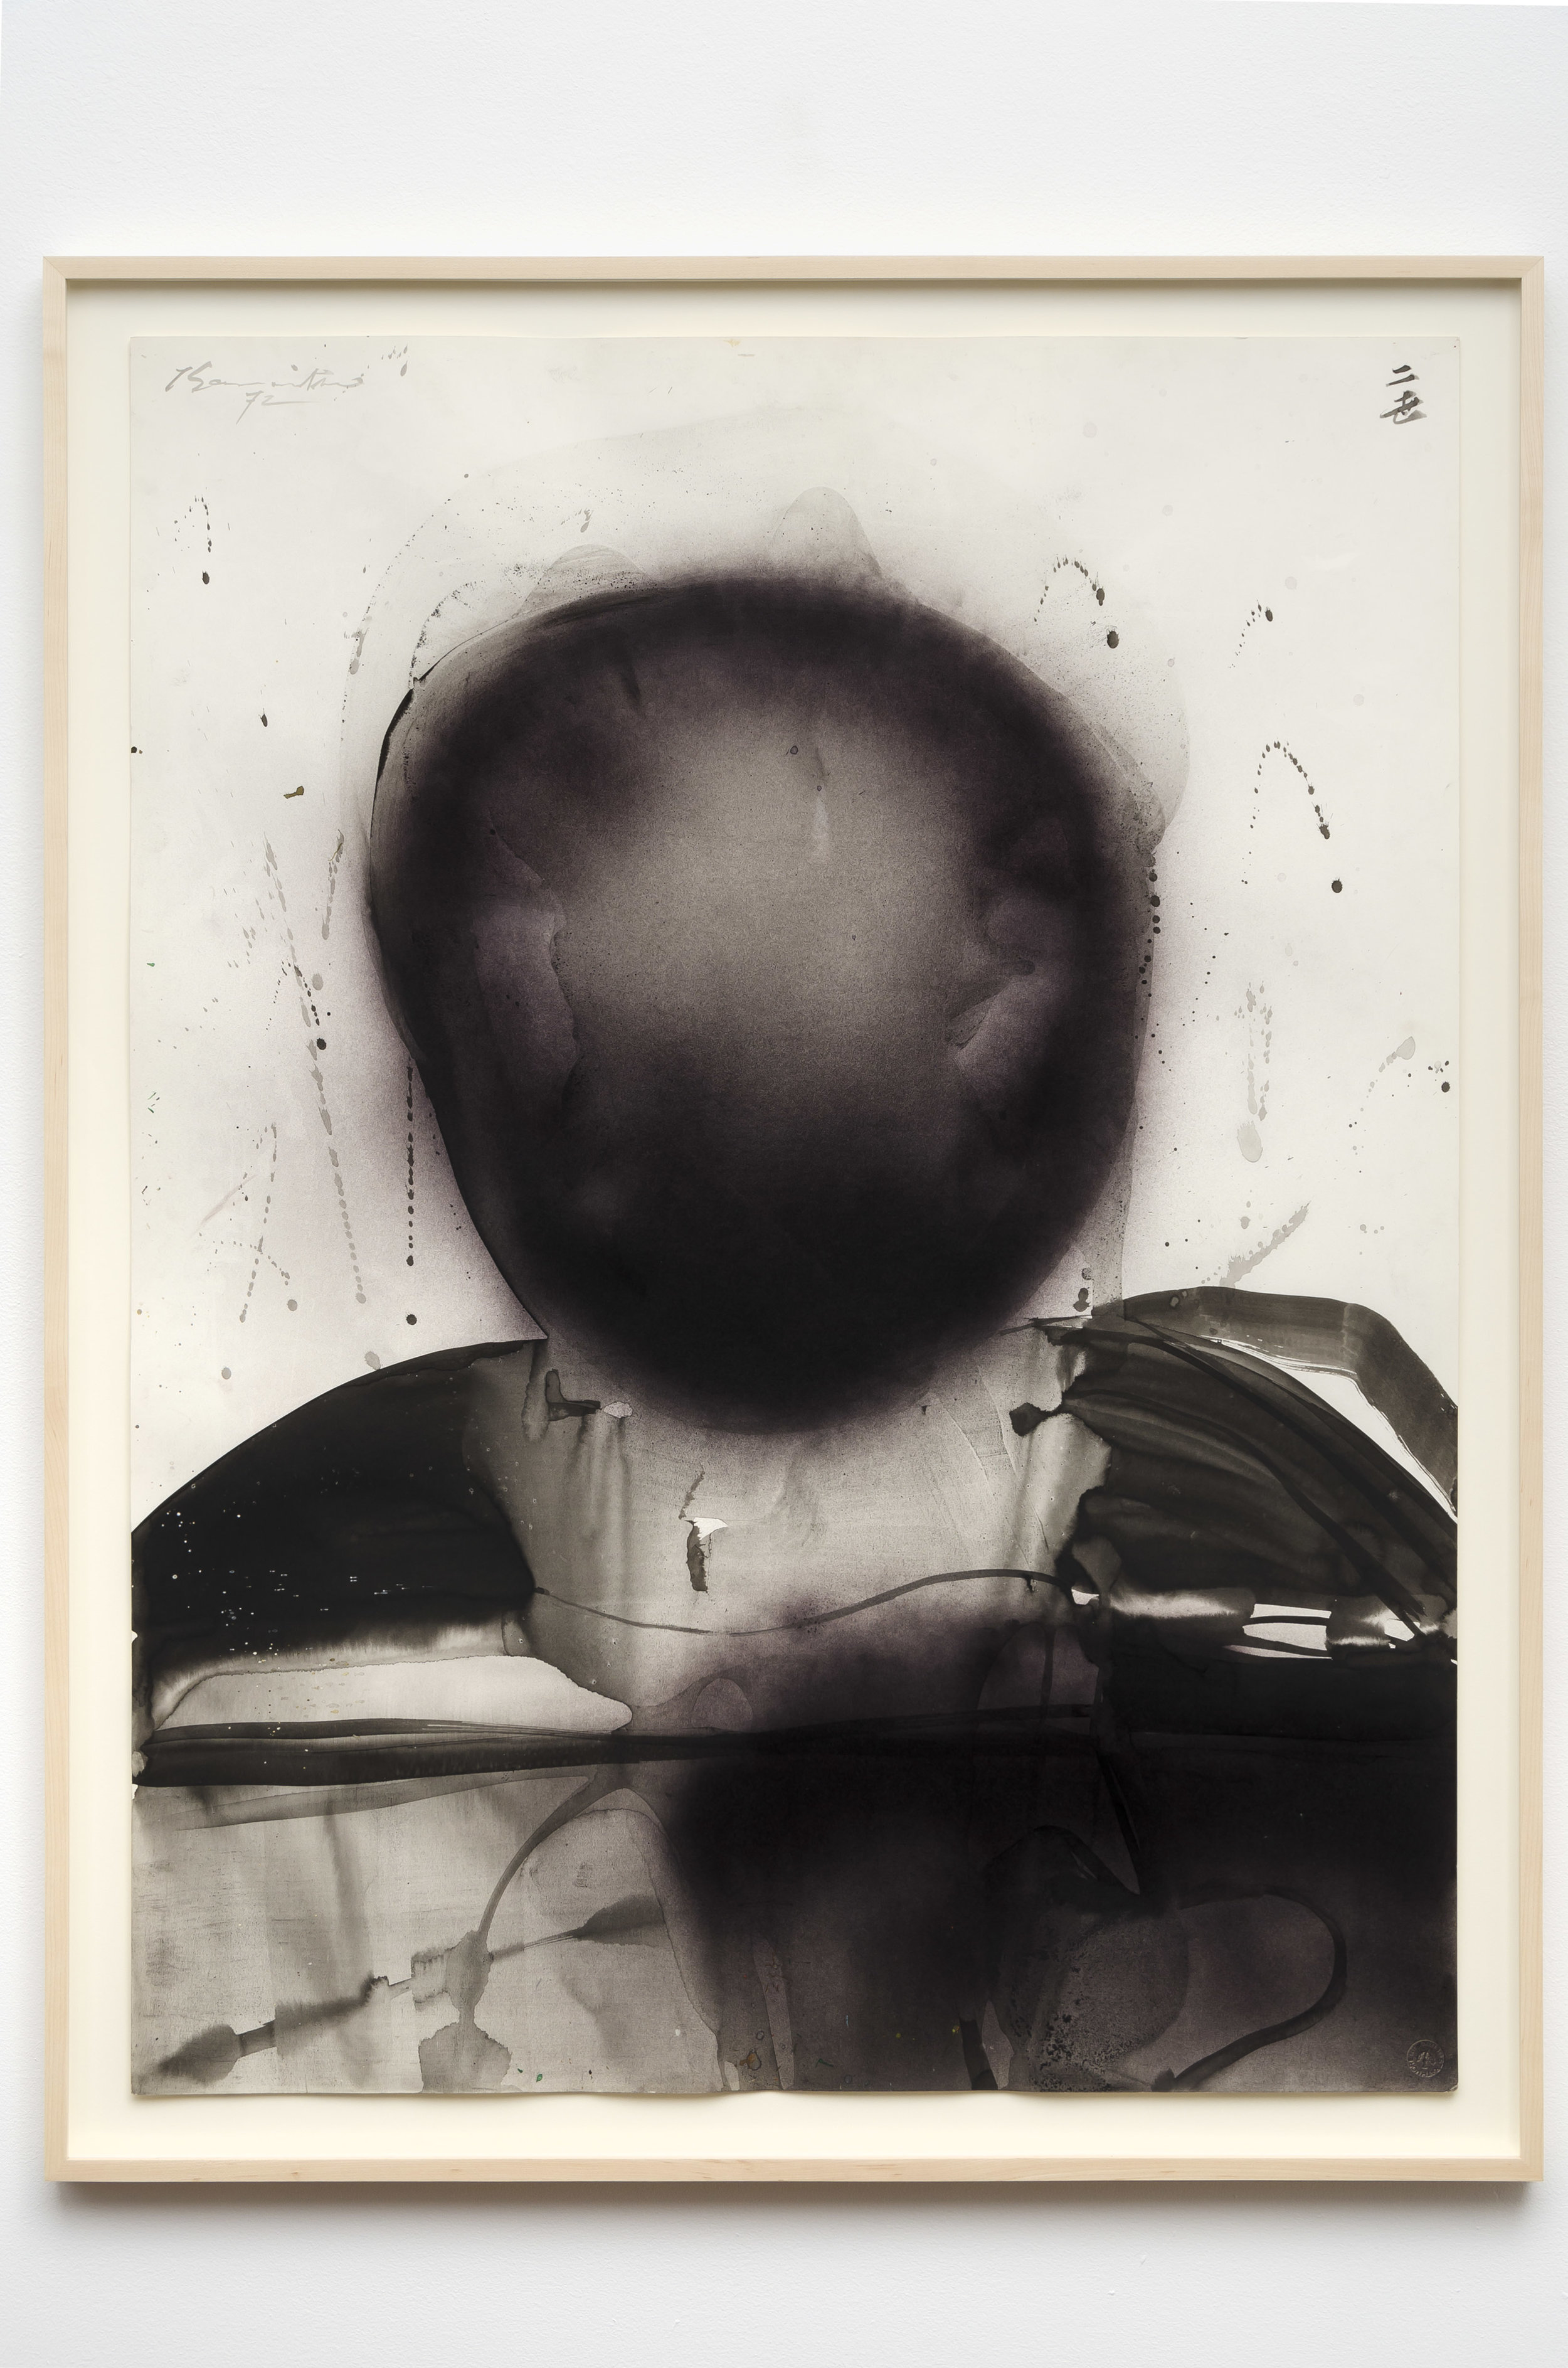 Untitled , 1972 sumi ink on paper 43.5 x 33.75 inches; 110.5 x 85.7 centimeters